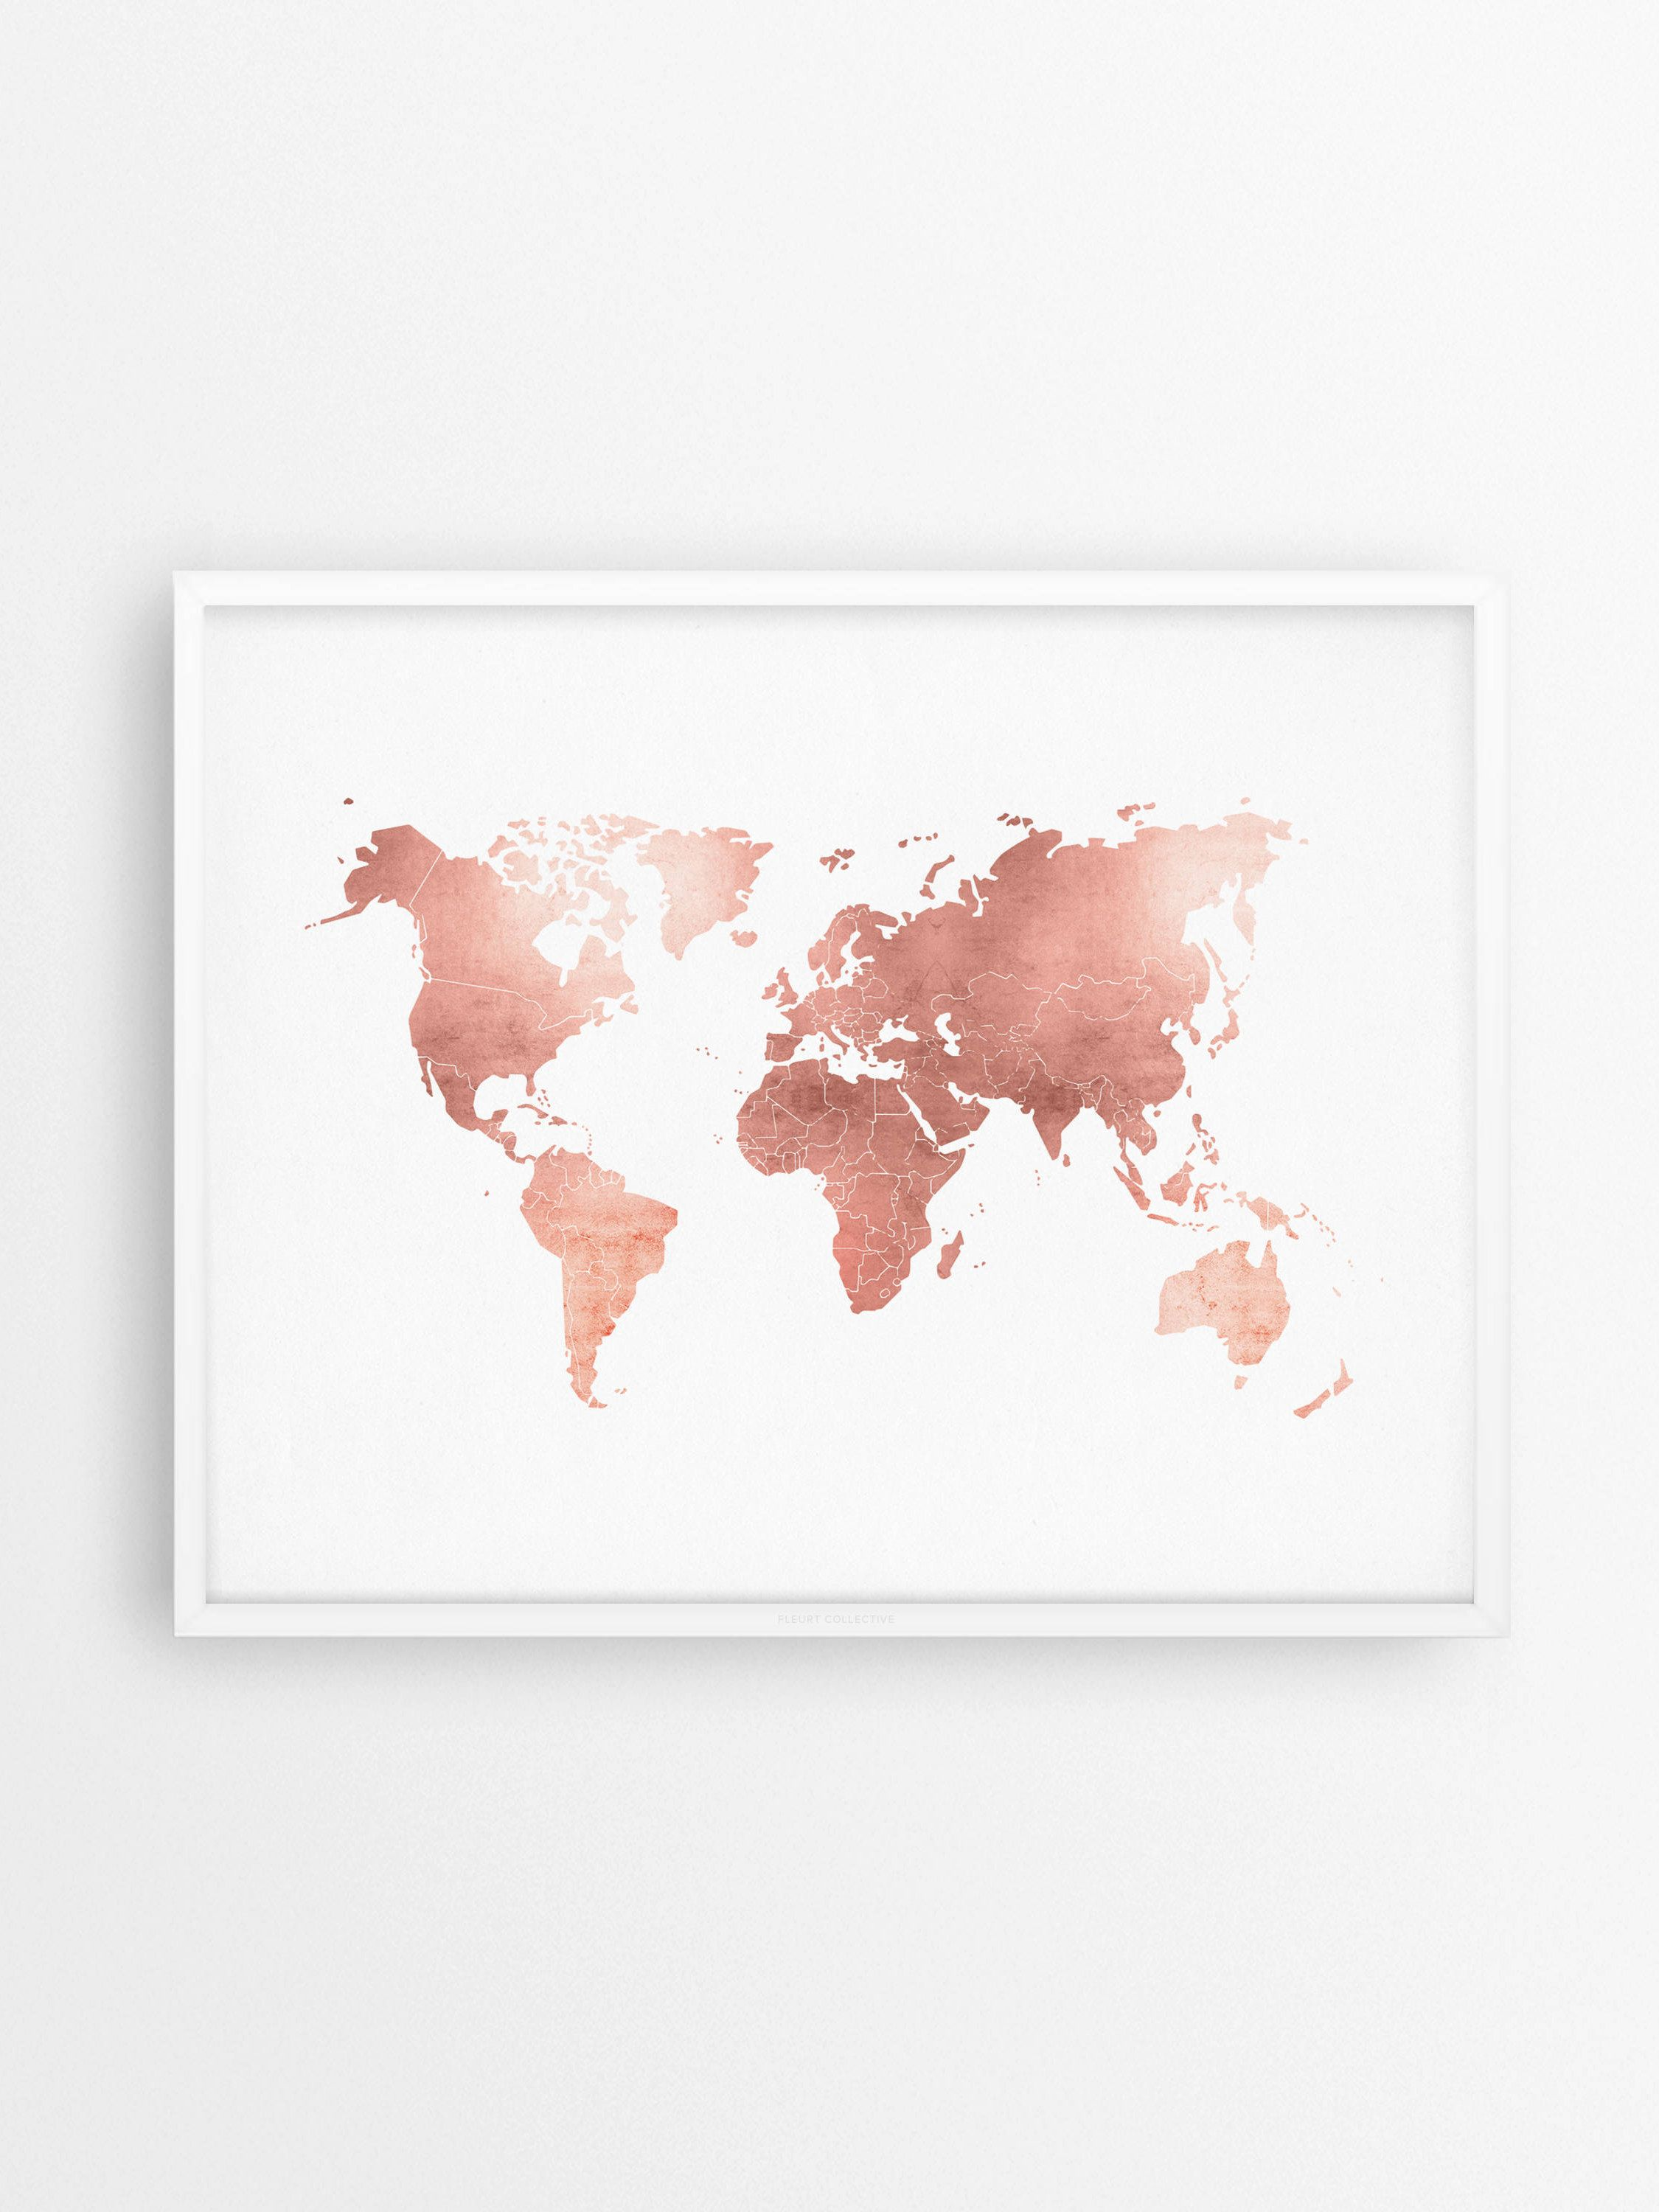 Rose gold map world map print rose gold office rose gold decor rose gold map world map print rose gold office rose gold gumiabroncs Gallery